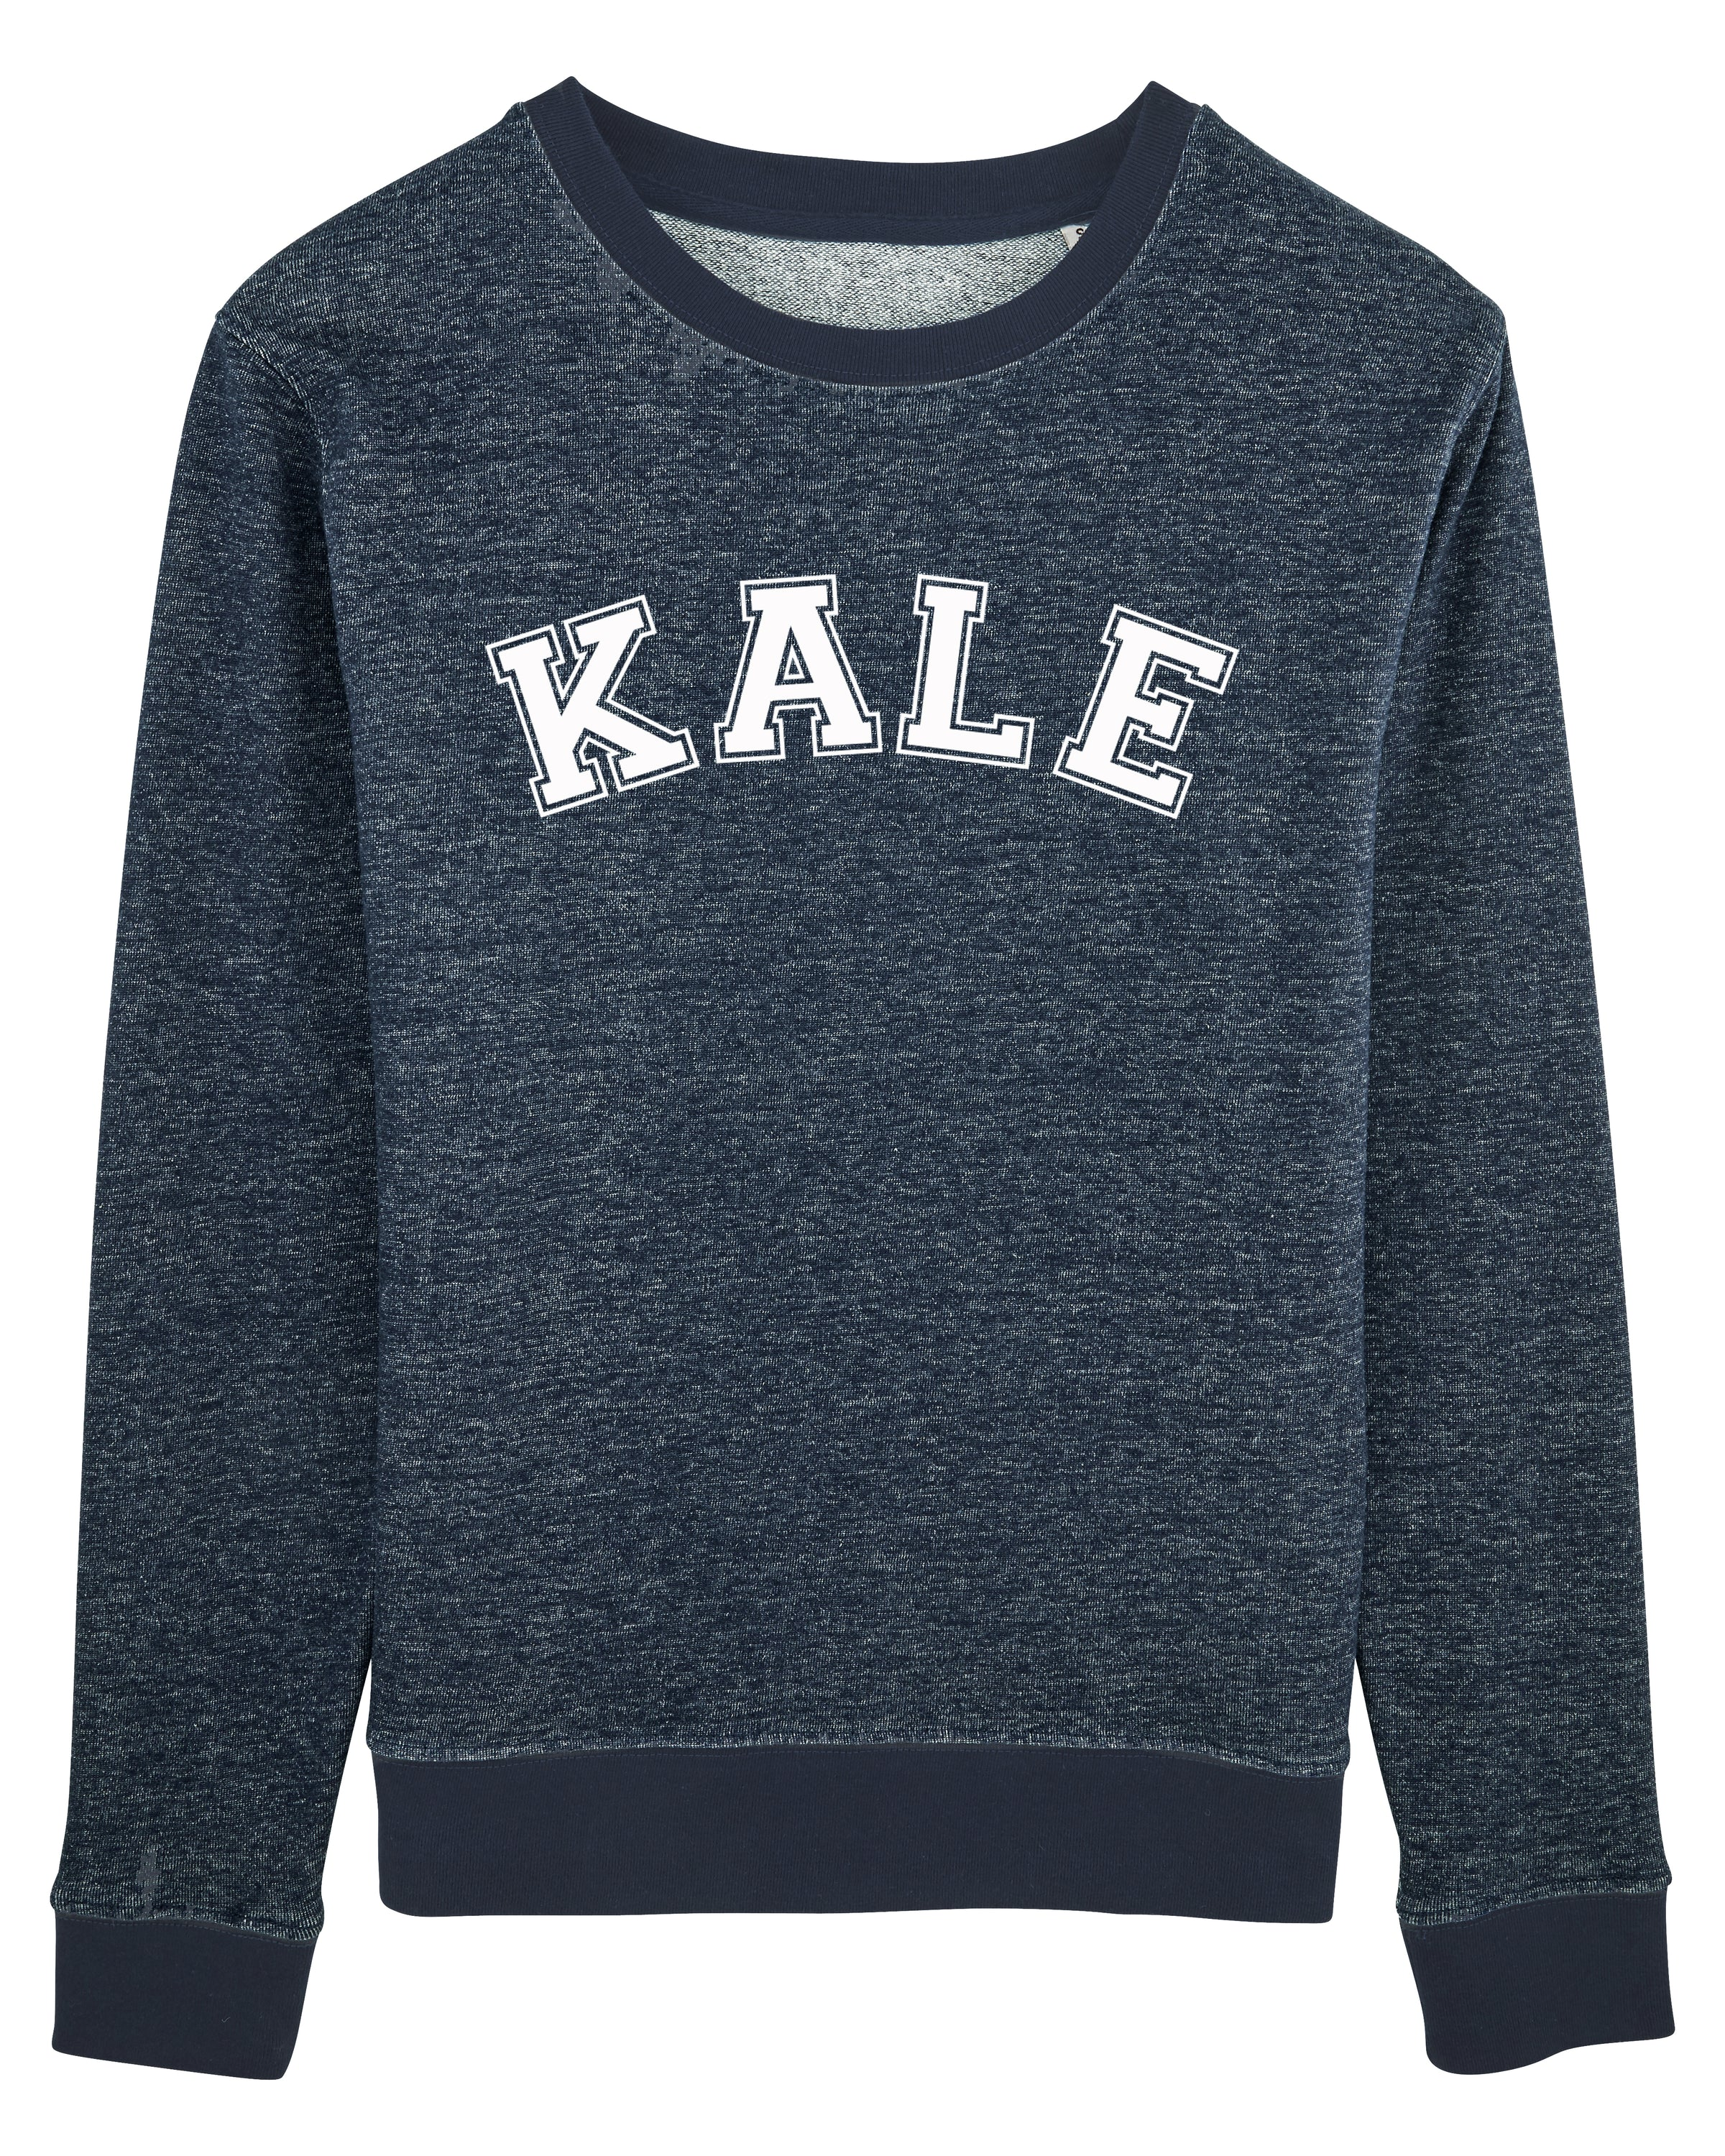 bfbc8ca3fc9f PROMO - KALE - Straight – VGTL by The Green Family